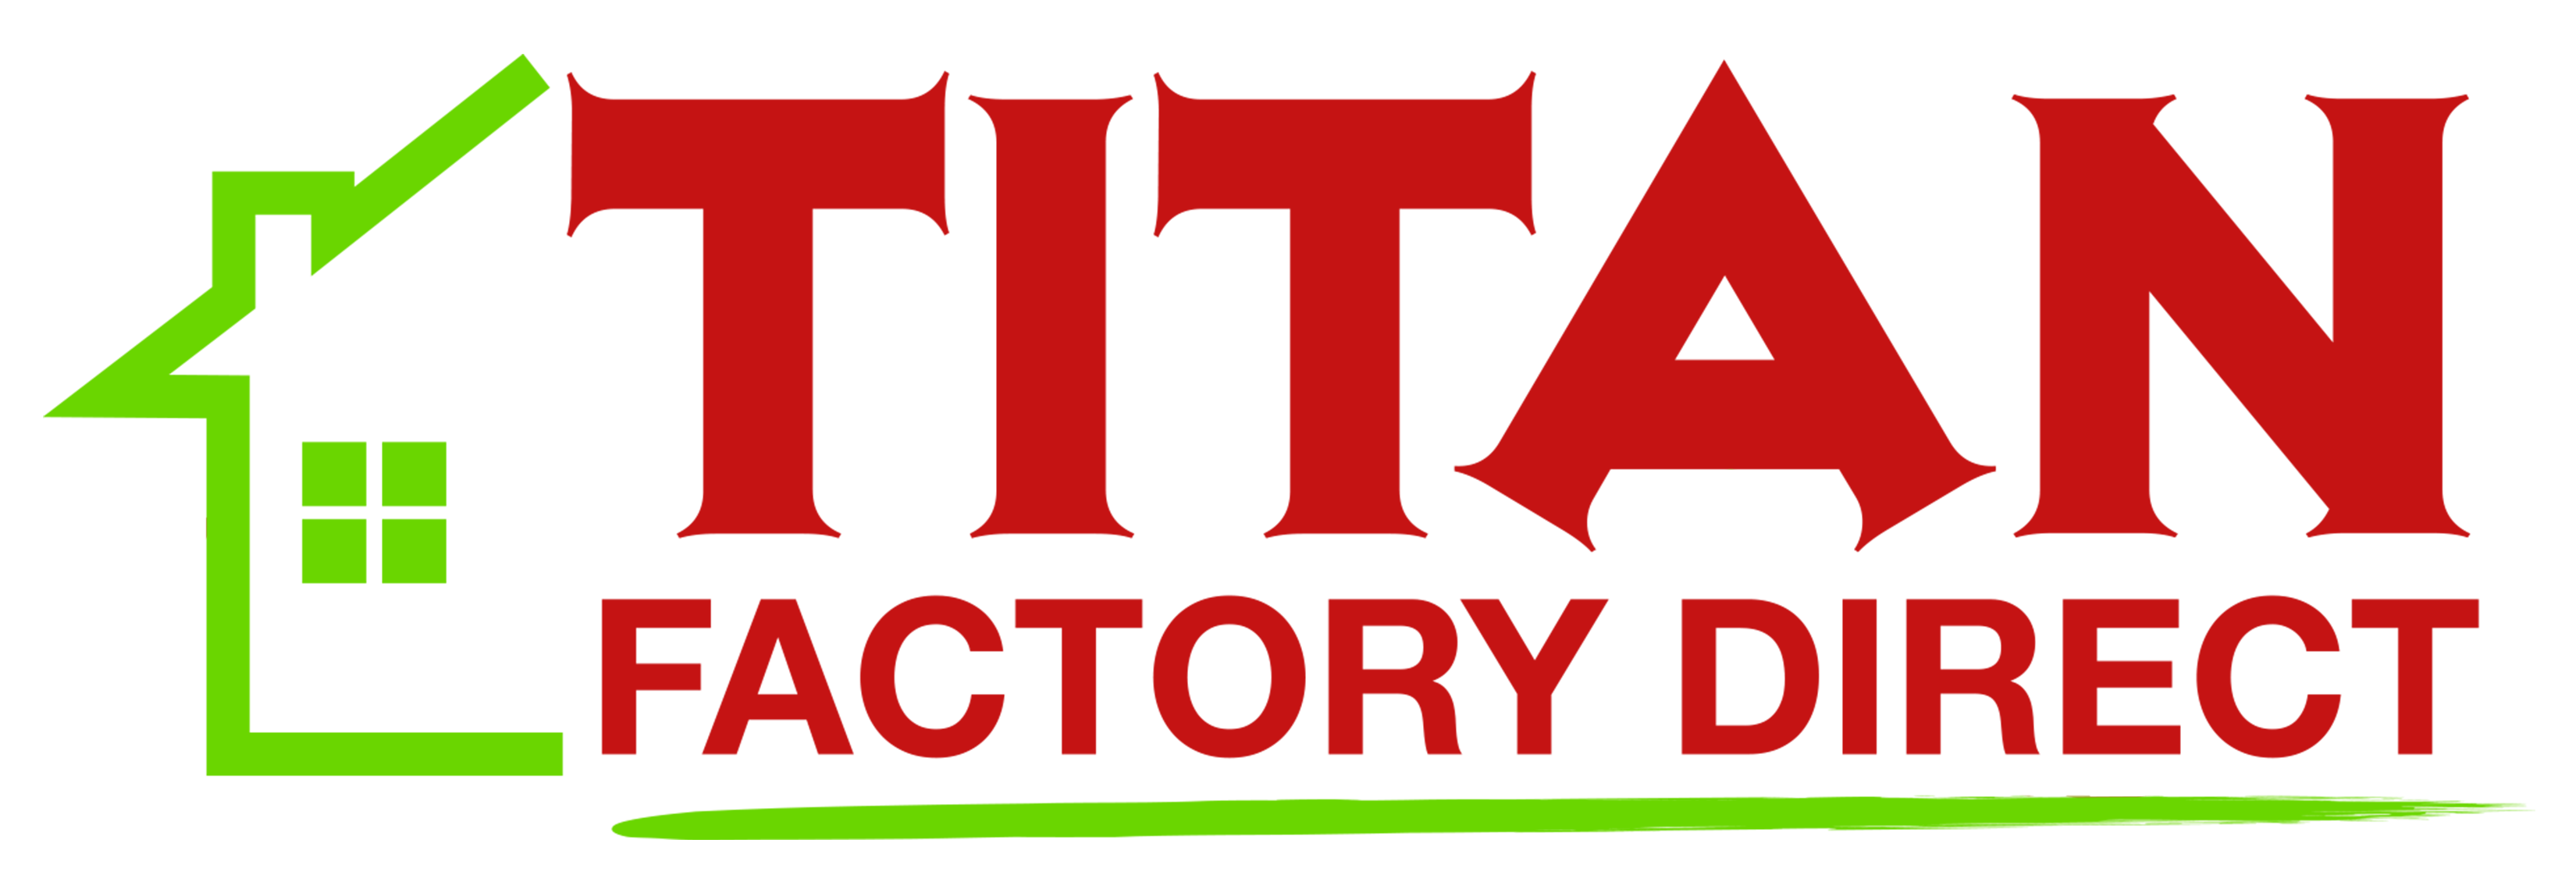 TITAN TRADITIONAL LOGO-1.png